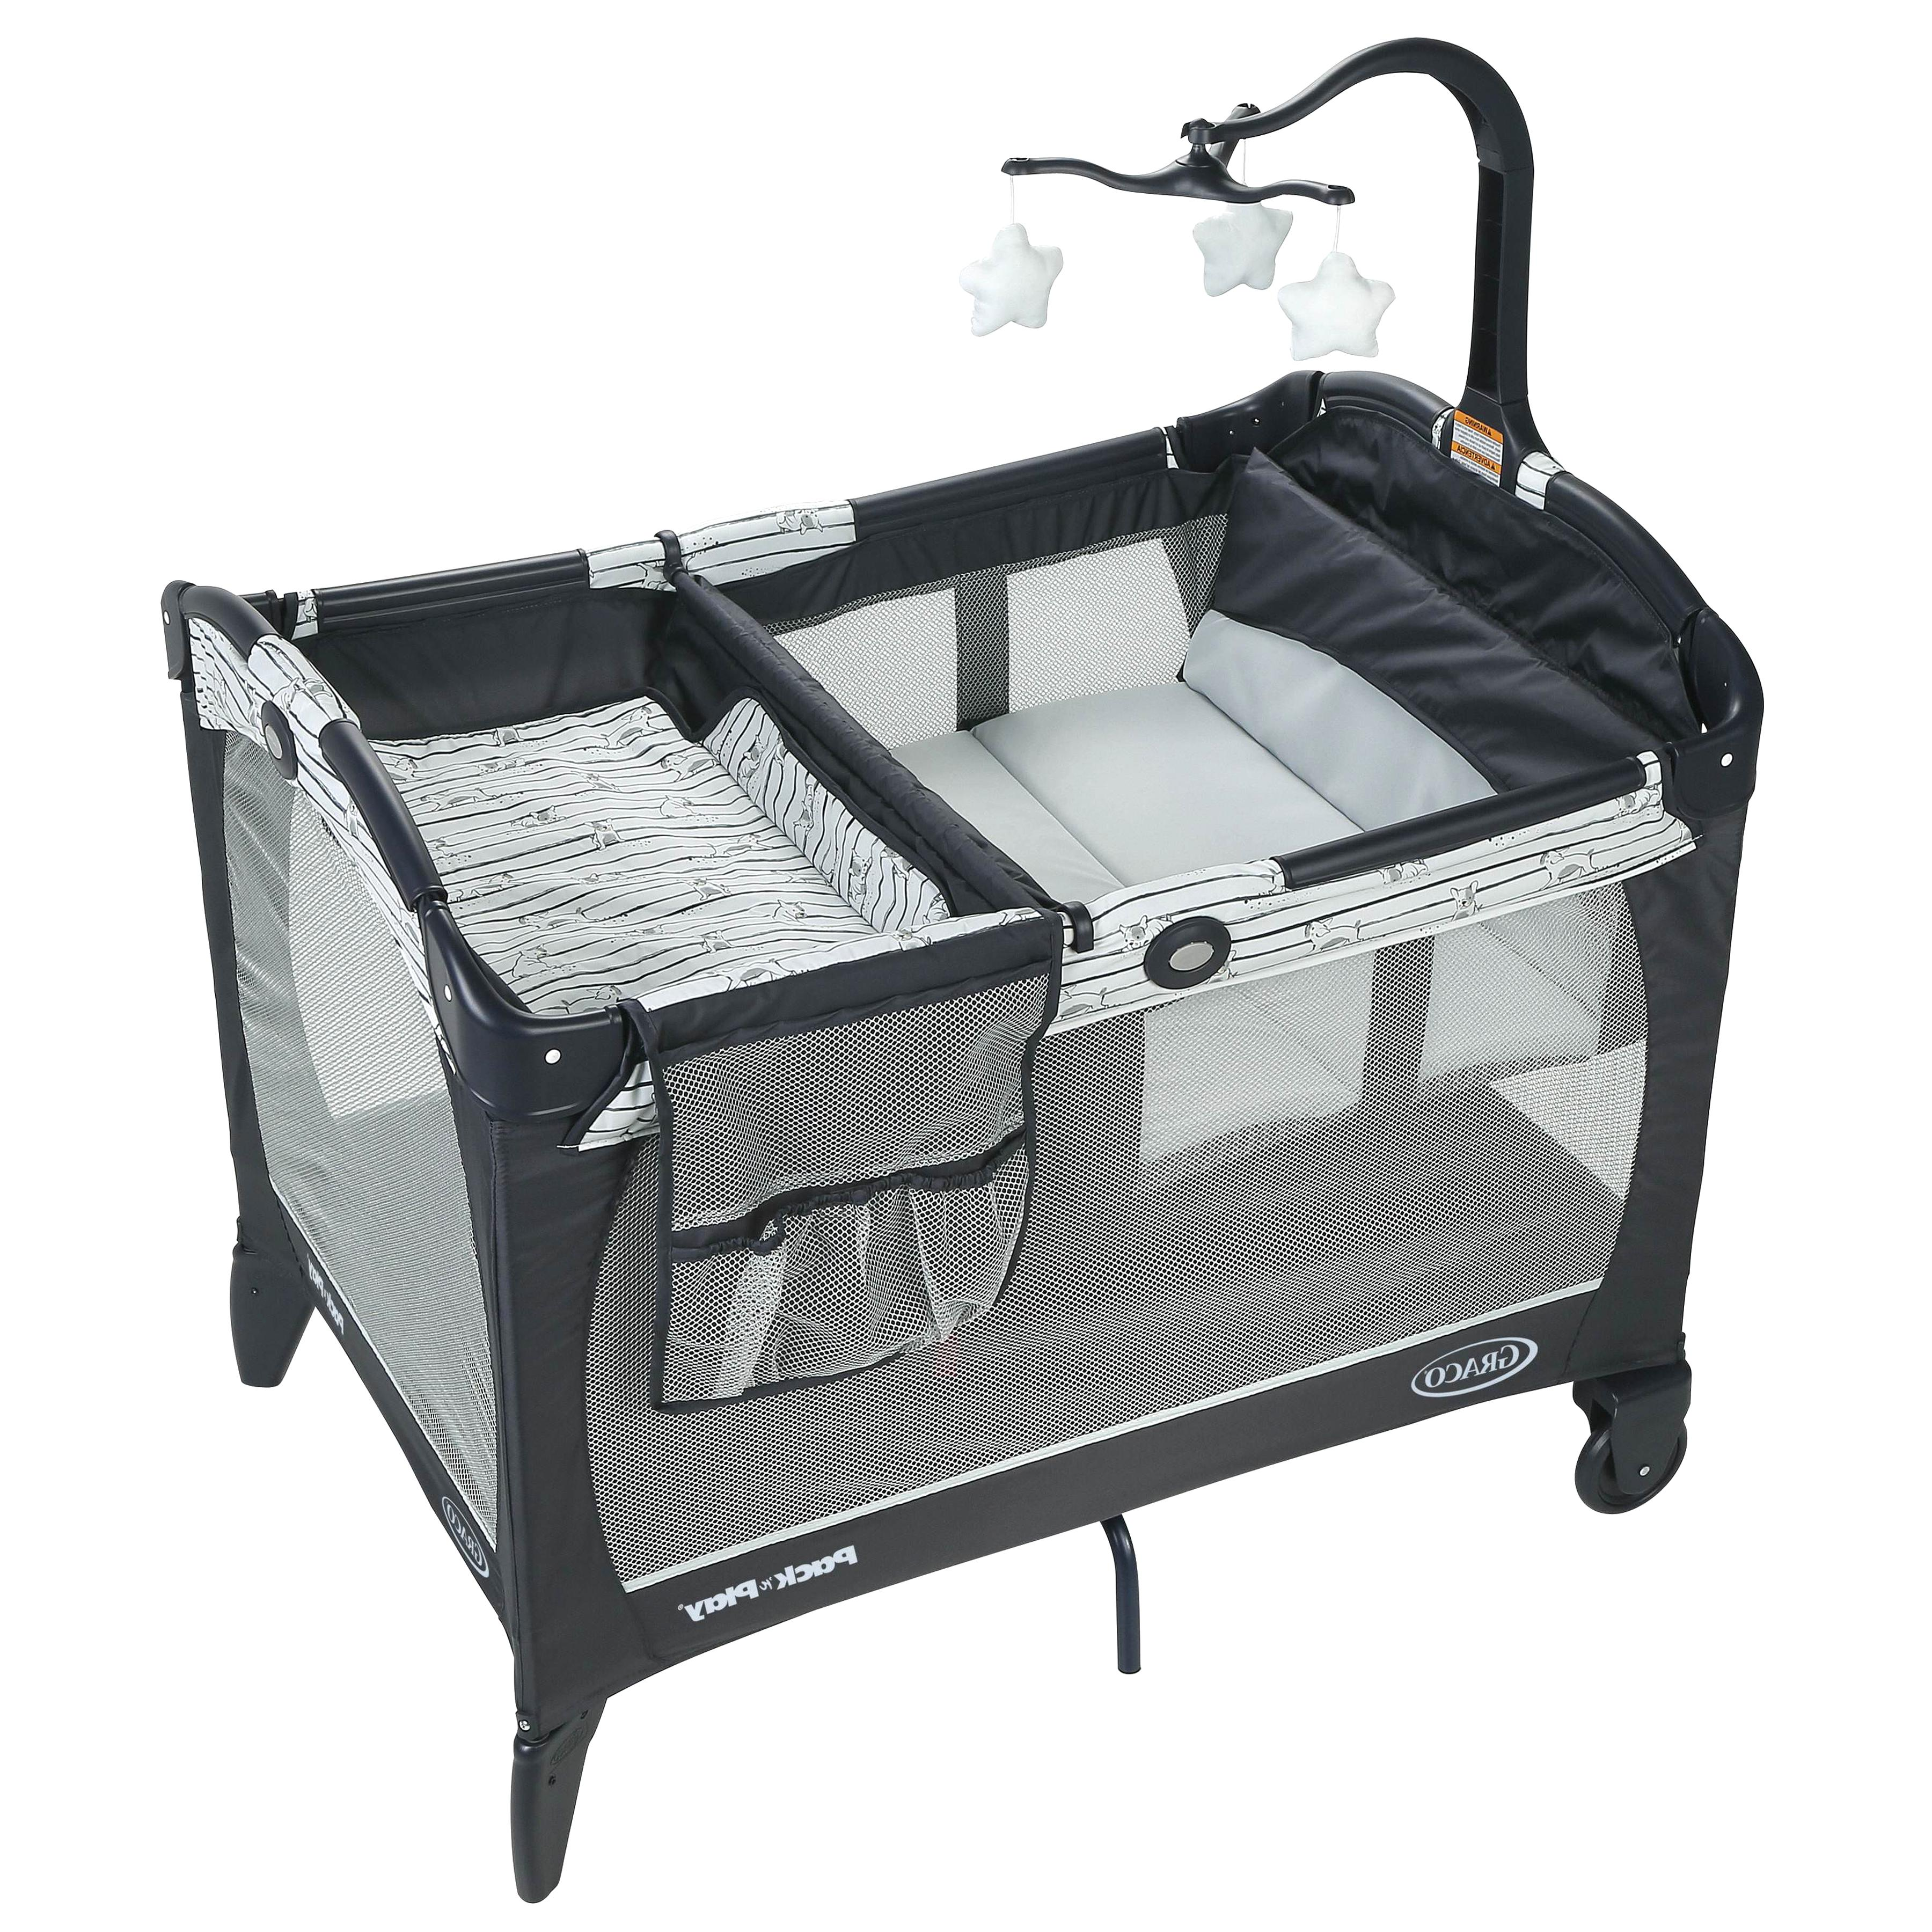 Baby Cradle Graco Graco Pack N Play Bassinet For Sale Only 4 Left At 65